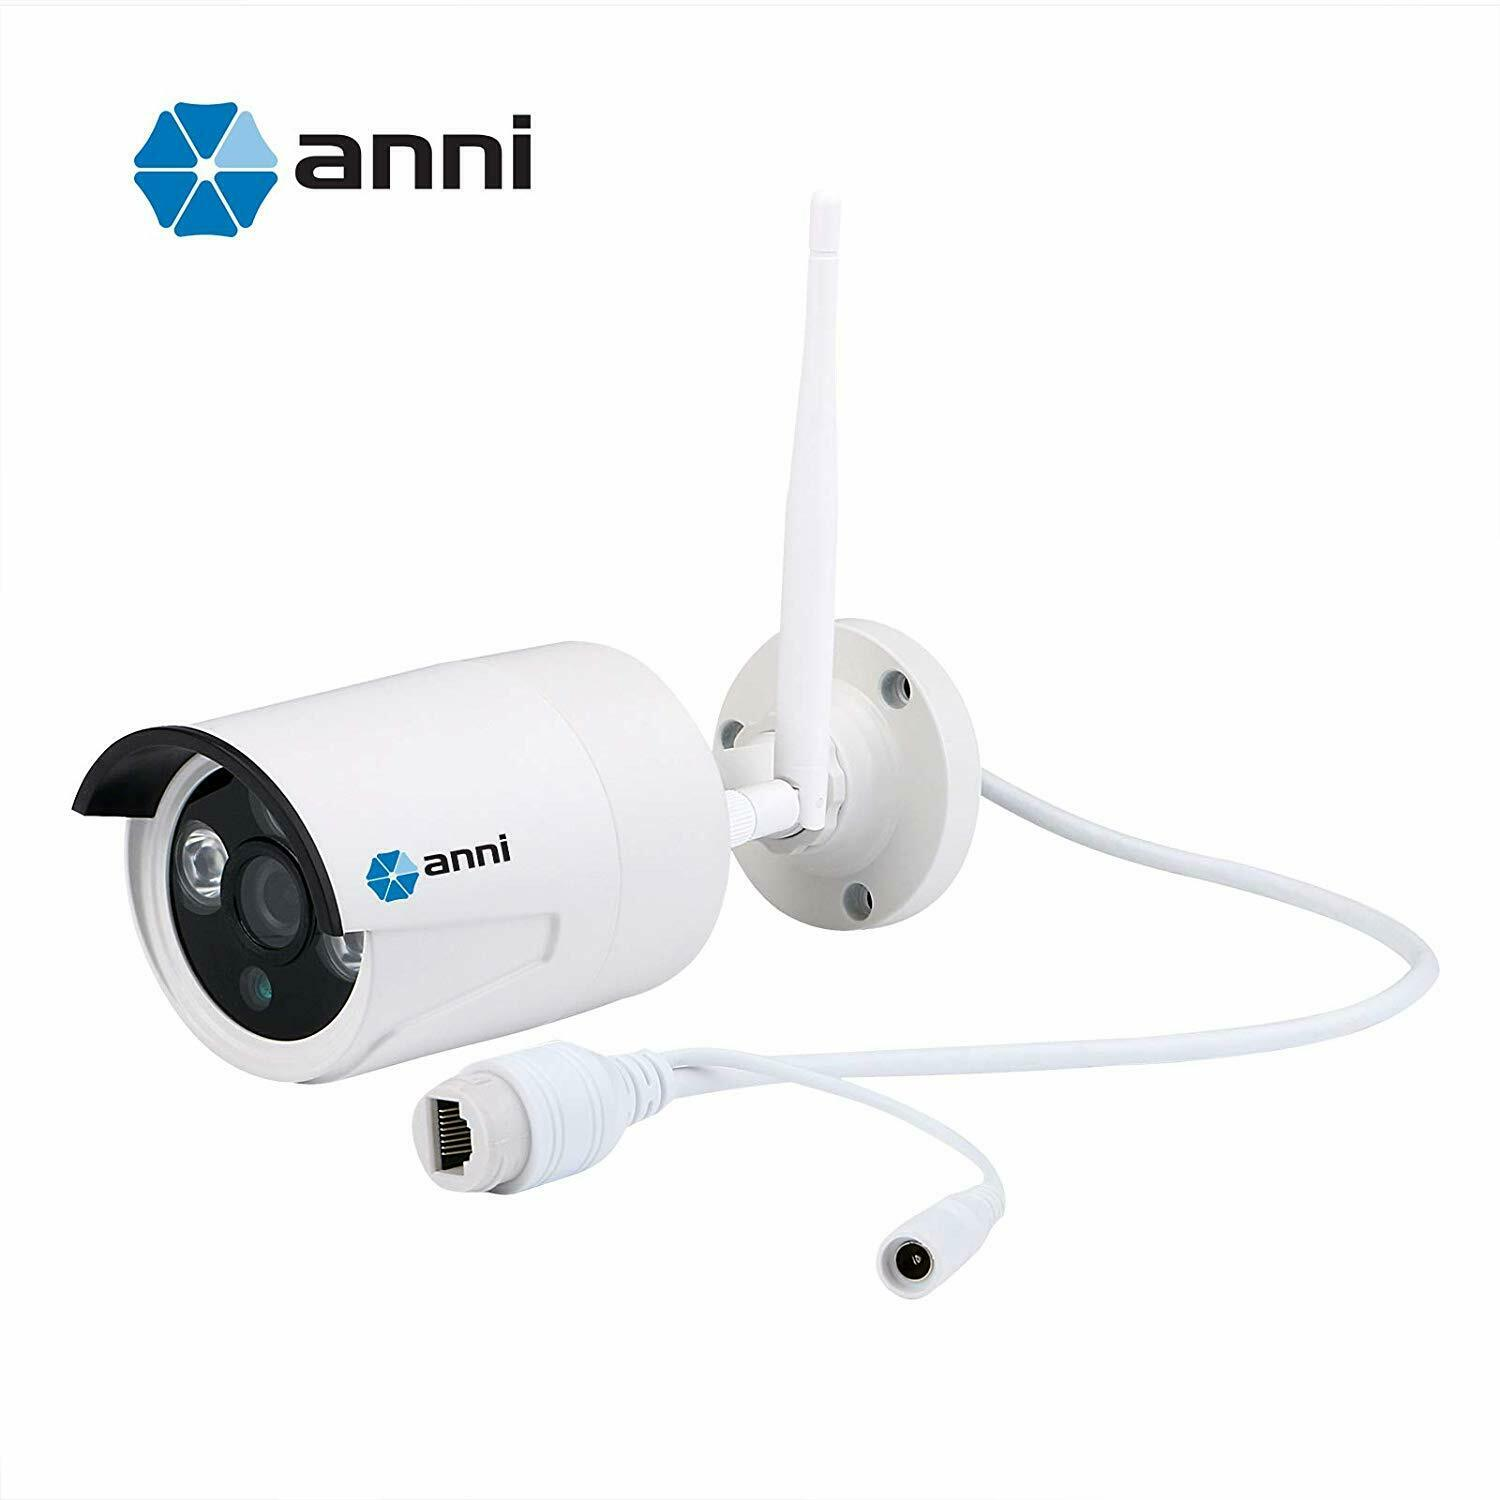 Anni Wireless Security IP Camera 1.0MP 720P Weatherproof Wir